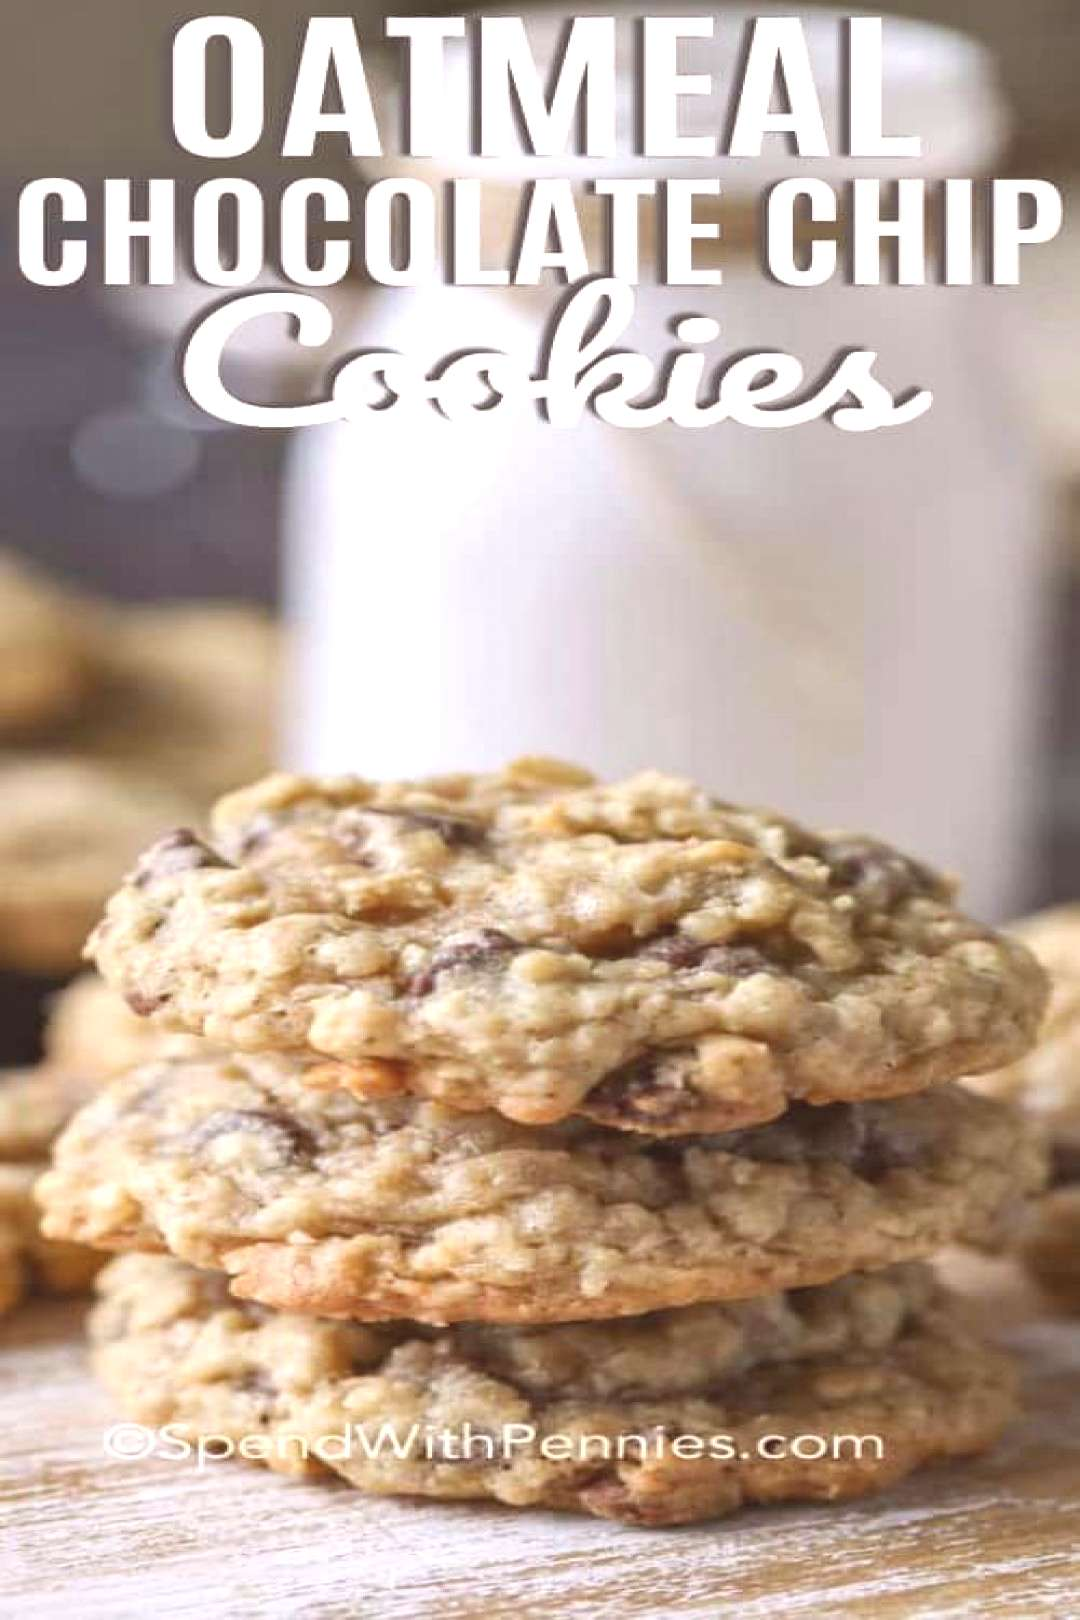 Oatmeal Chocolate Chip Cookies - Spend With Pennies#chip